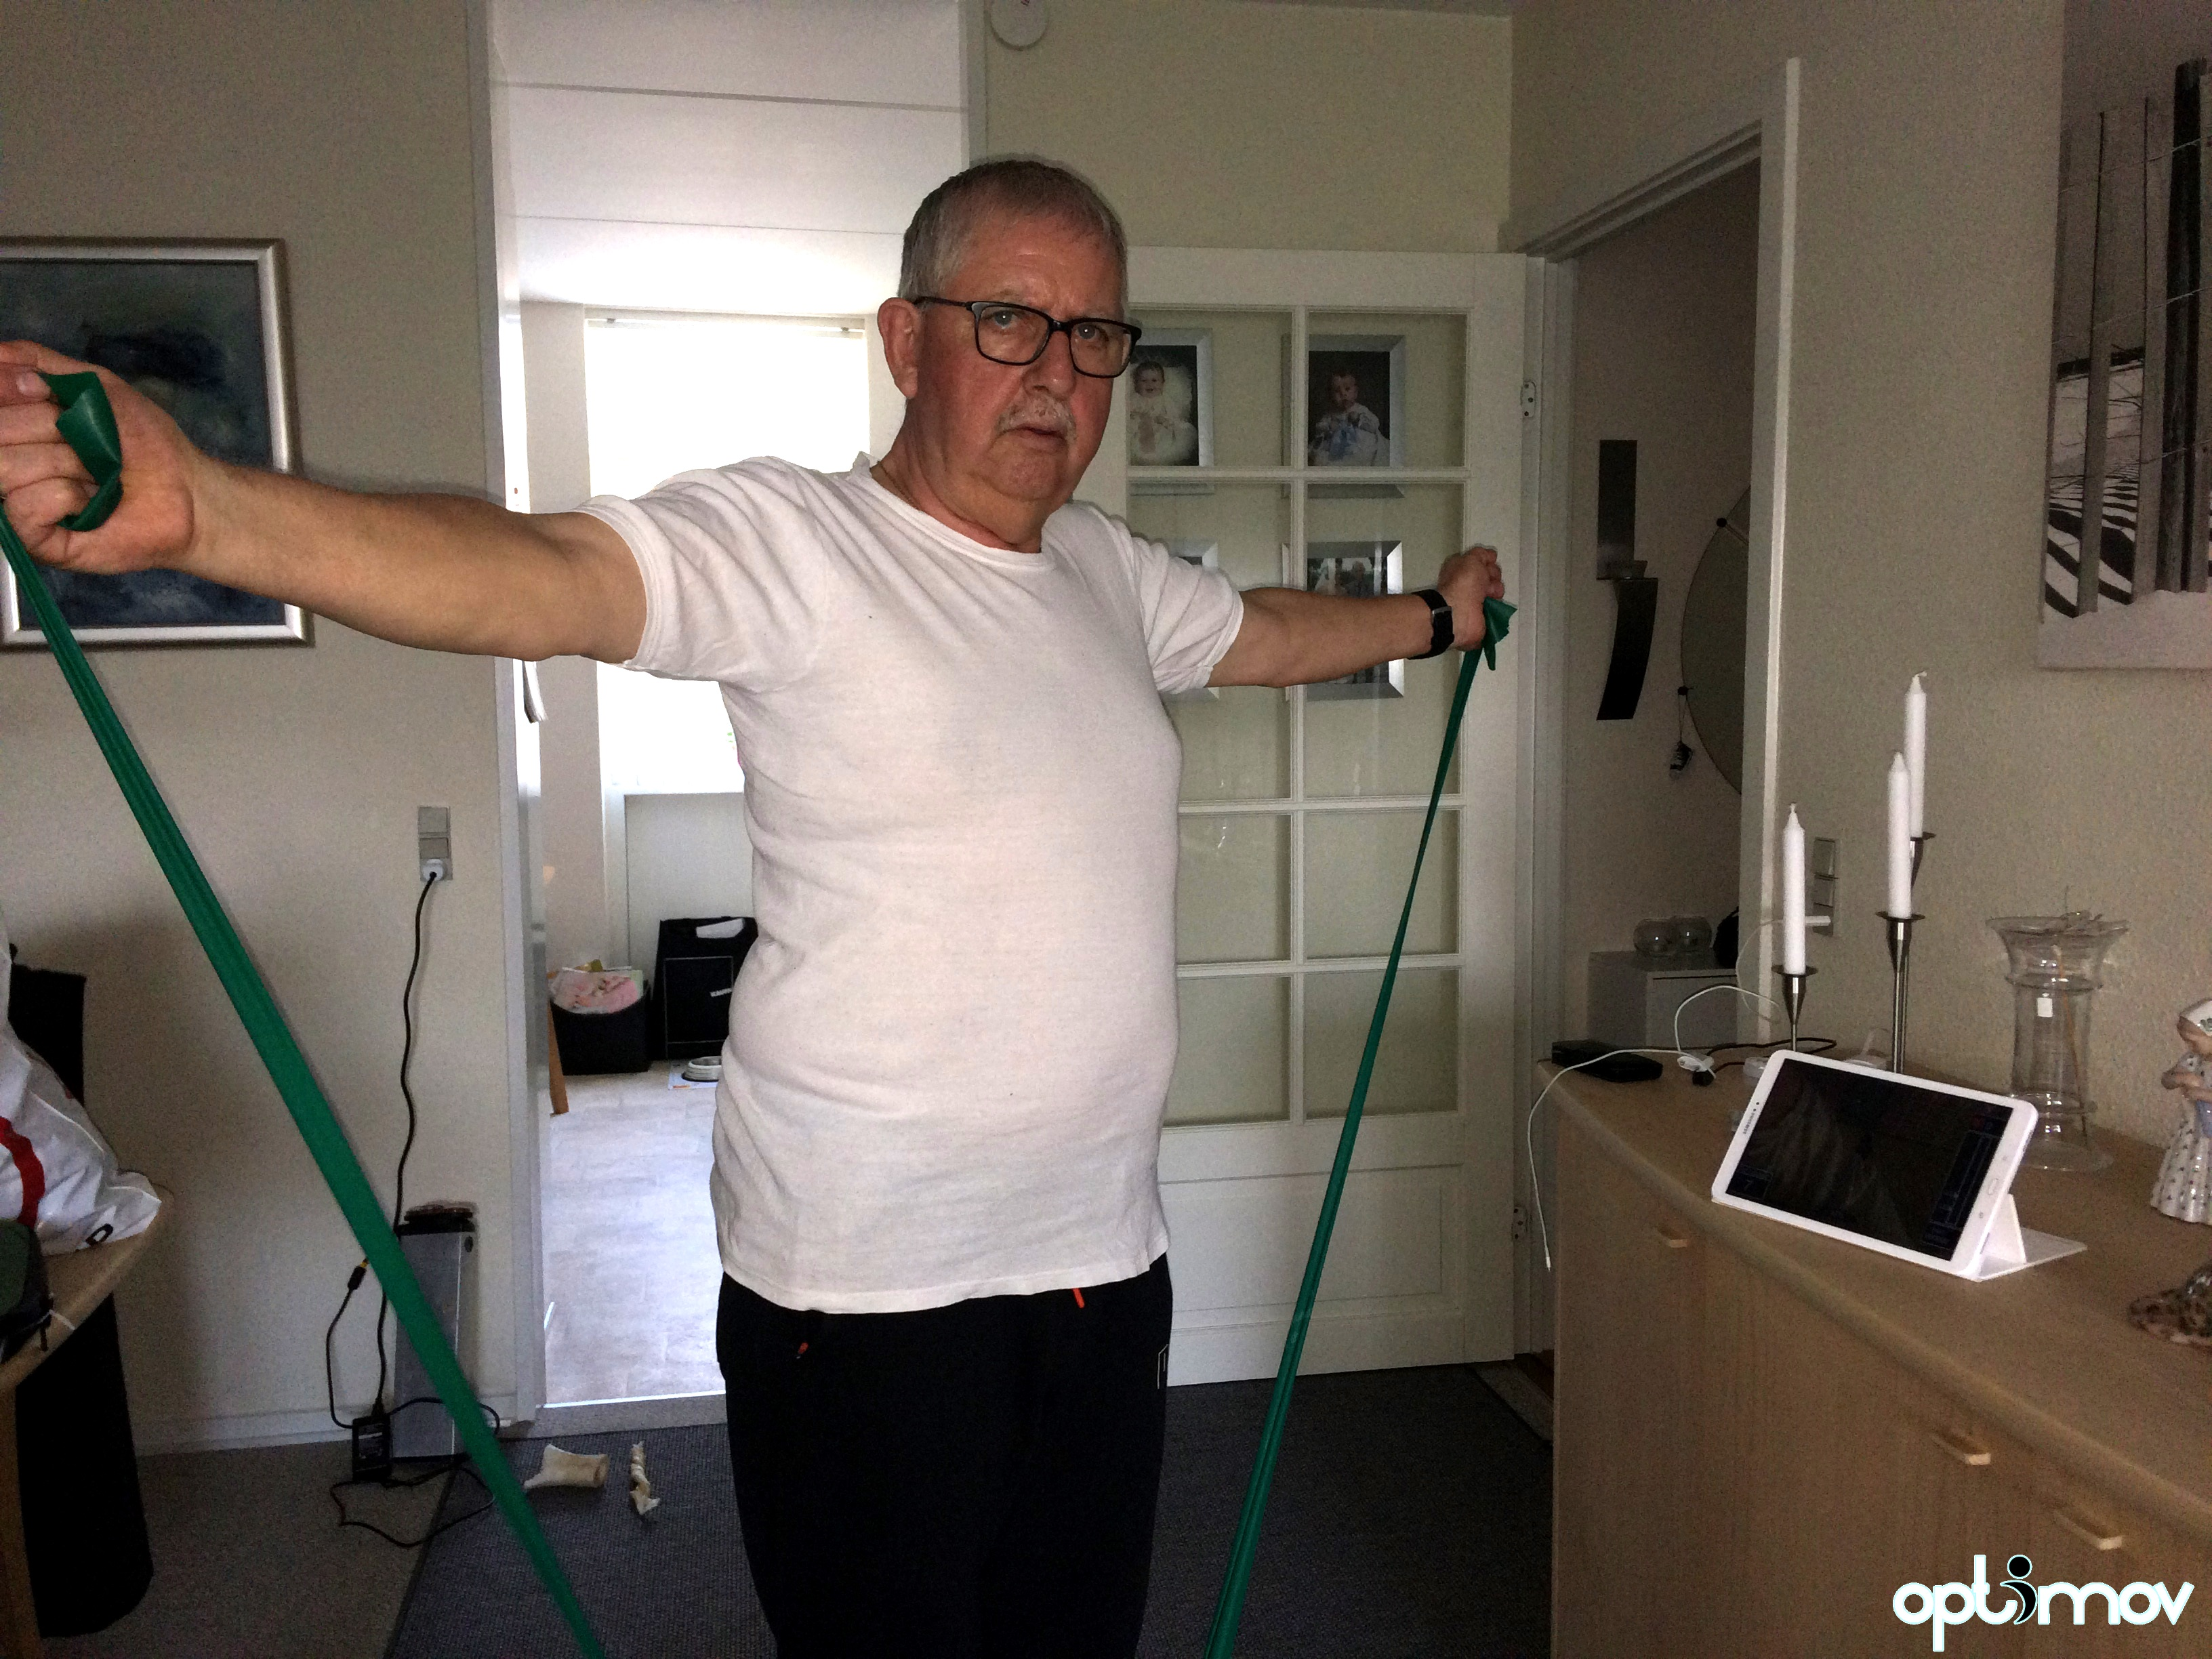 Optimover - Henry - training at home with the app